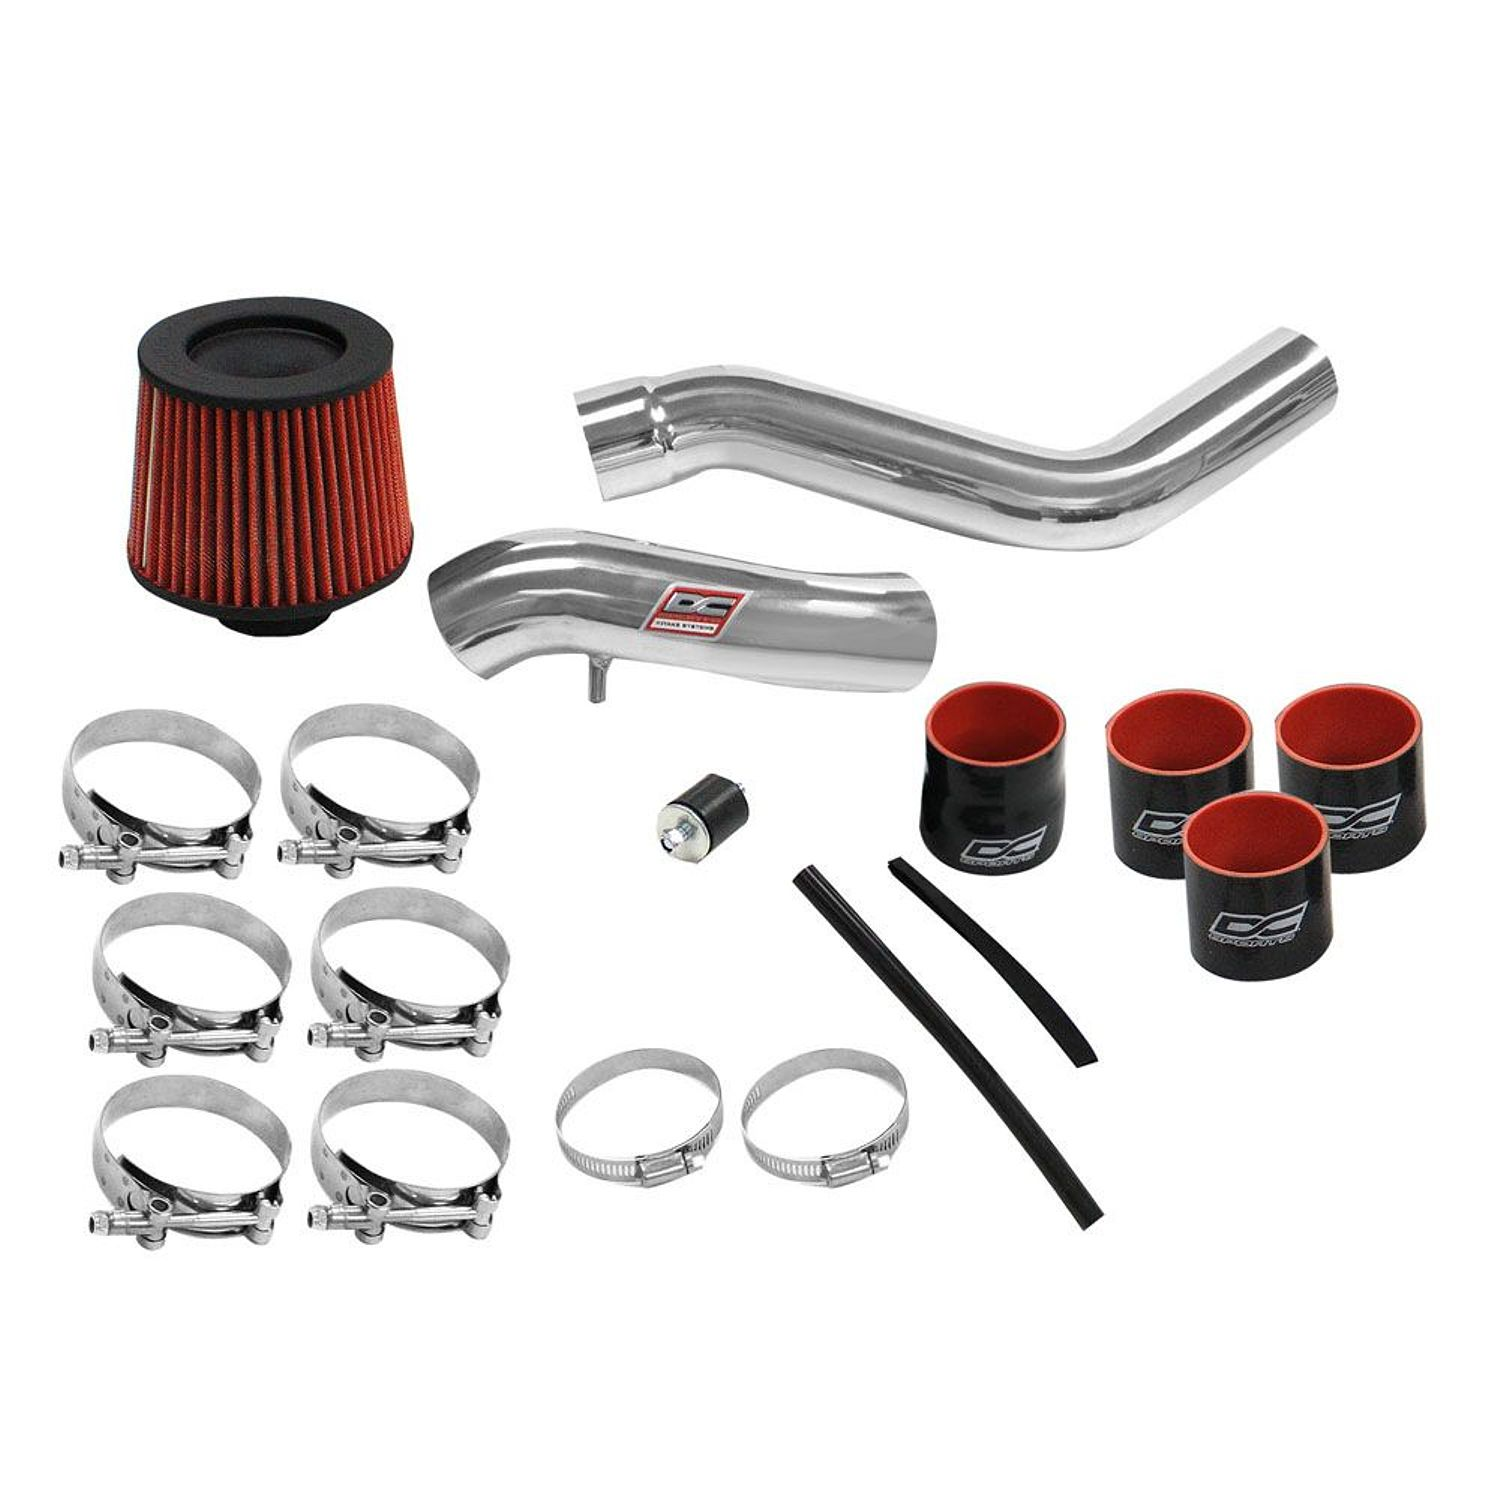 04-06 TIBRON 4CYL. Cold Air Intake System